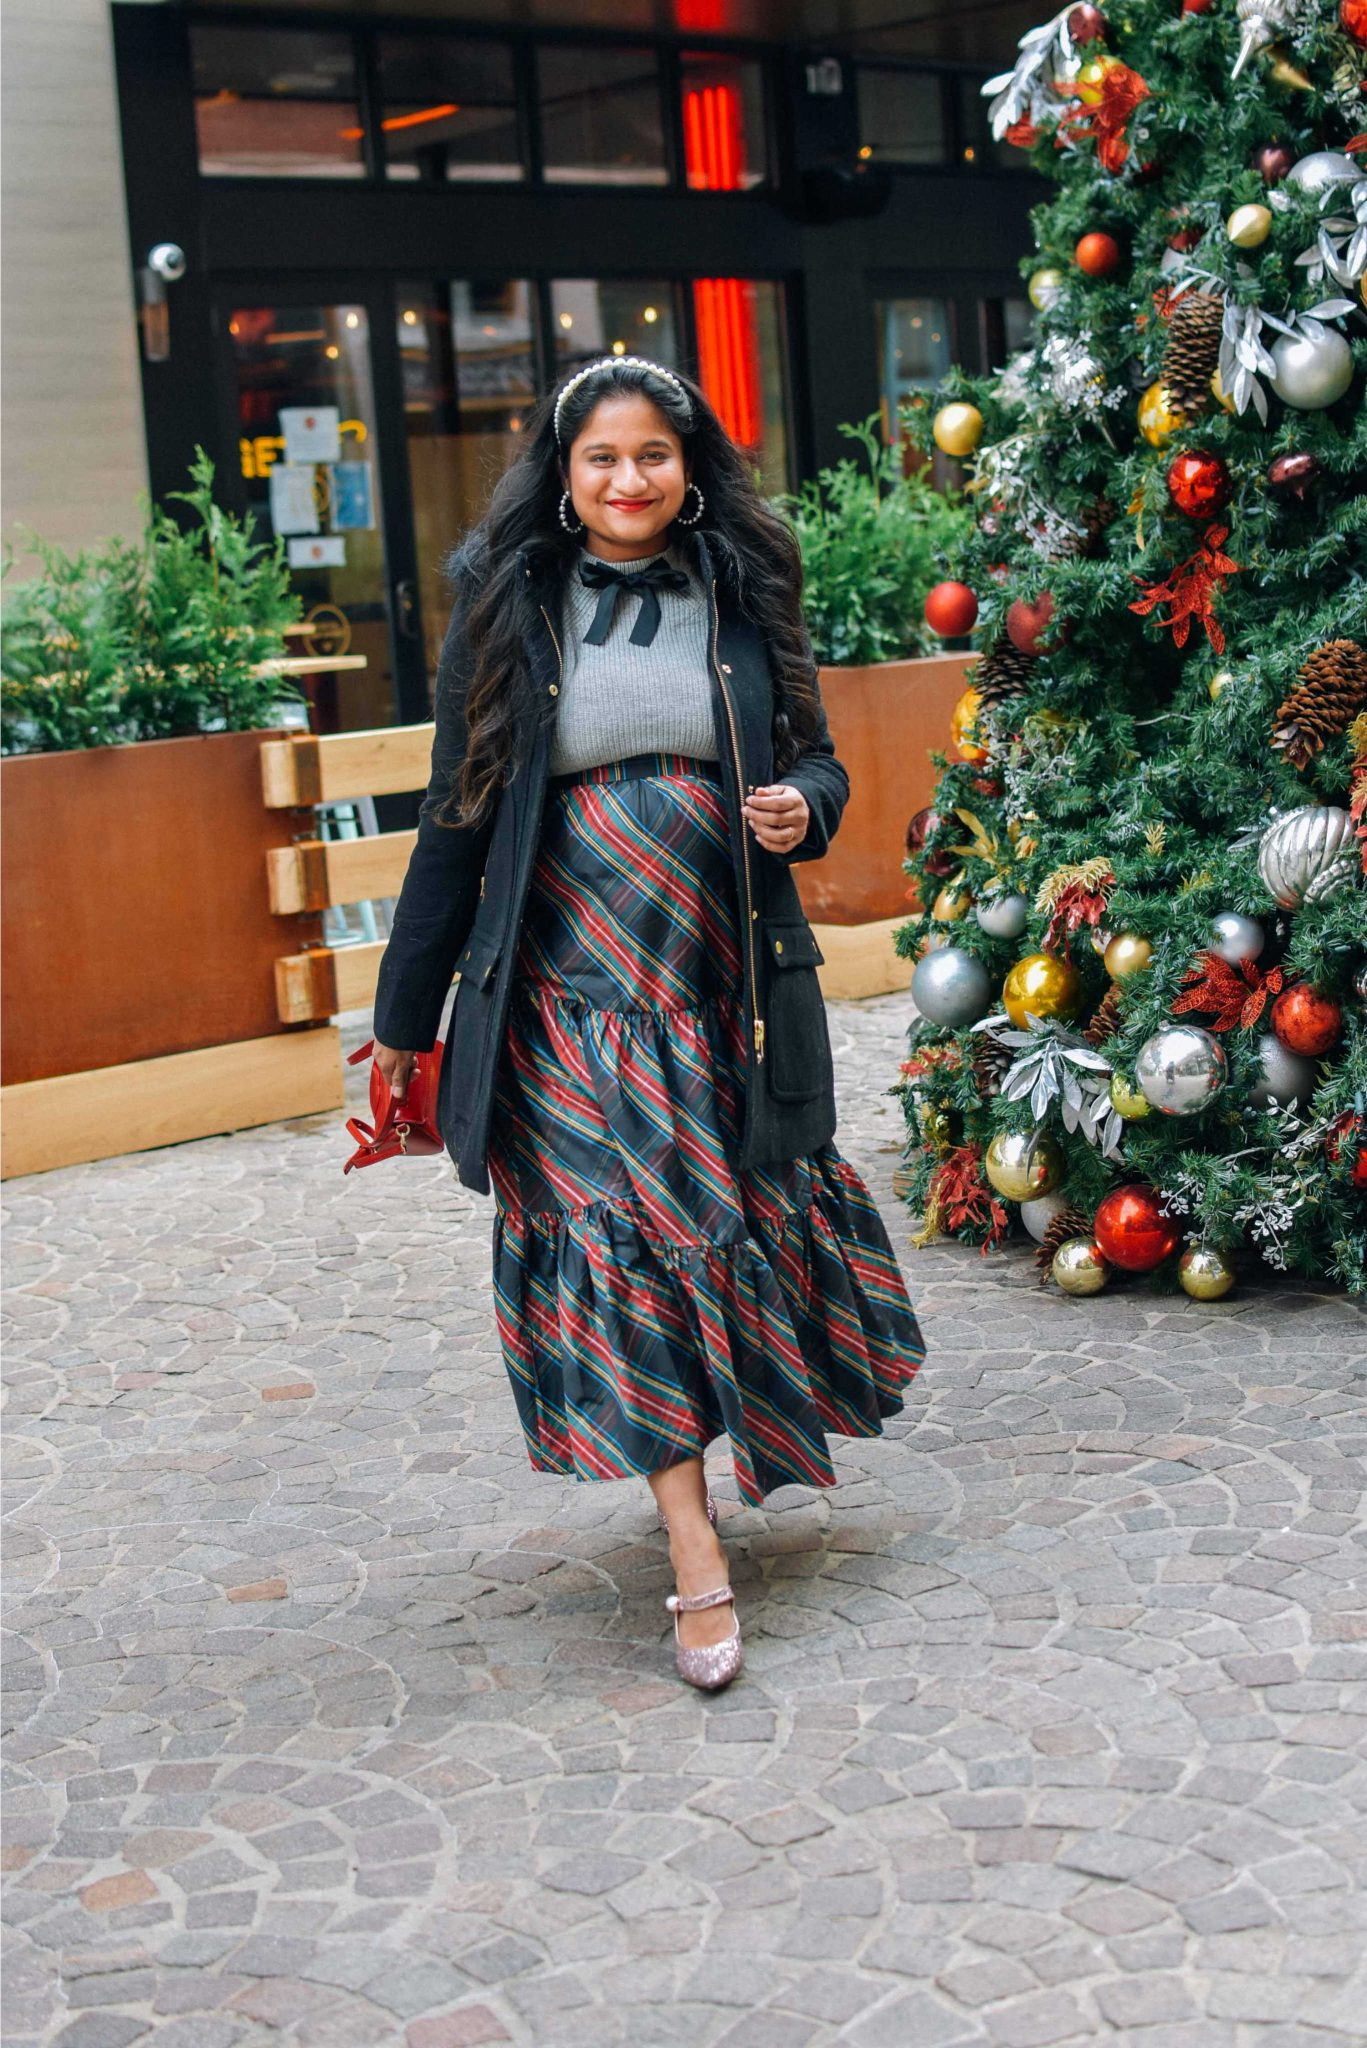 Wearing J.crew Chateau parka in Italian stadium-cloth wool in black, J.crew Tartan tiered sirt, bow sweater, Pink sequin pumps-Maternity Holiday Outfit ideas |Cute Holiday Outfit Ideas by popular Maryland modest fashion blog, Dreaming Loud: image of a woman wearing a J.crew Tartan Tartan skirt, grey sweater with black bow accent, pearl headband, J. Crew Chateau parka, and holding a Lulu Guinness bag.